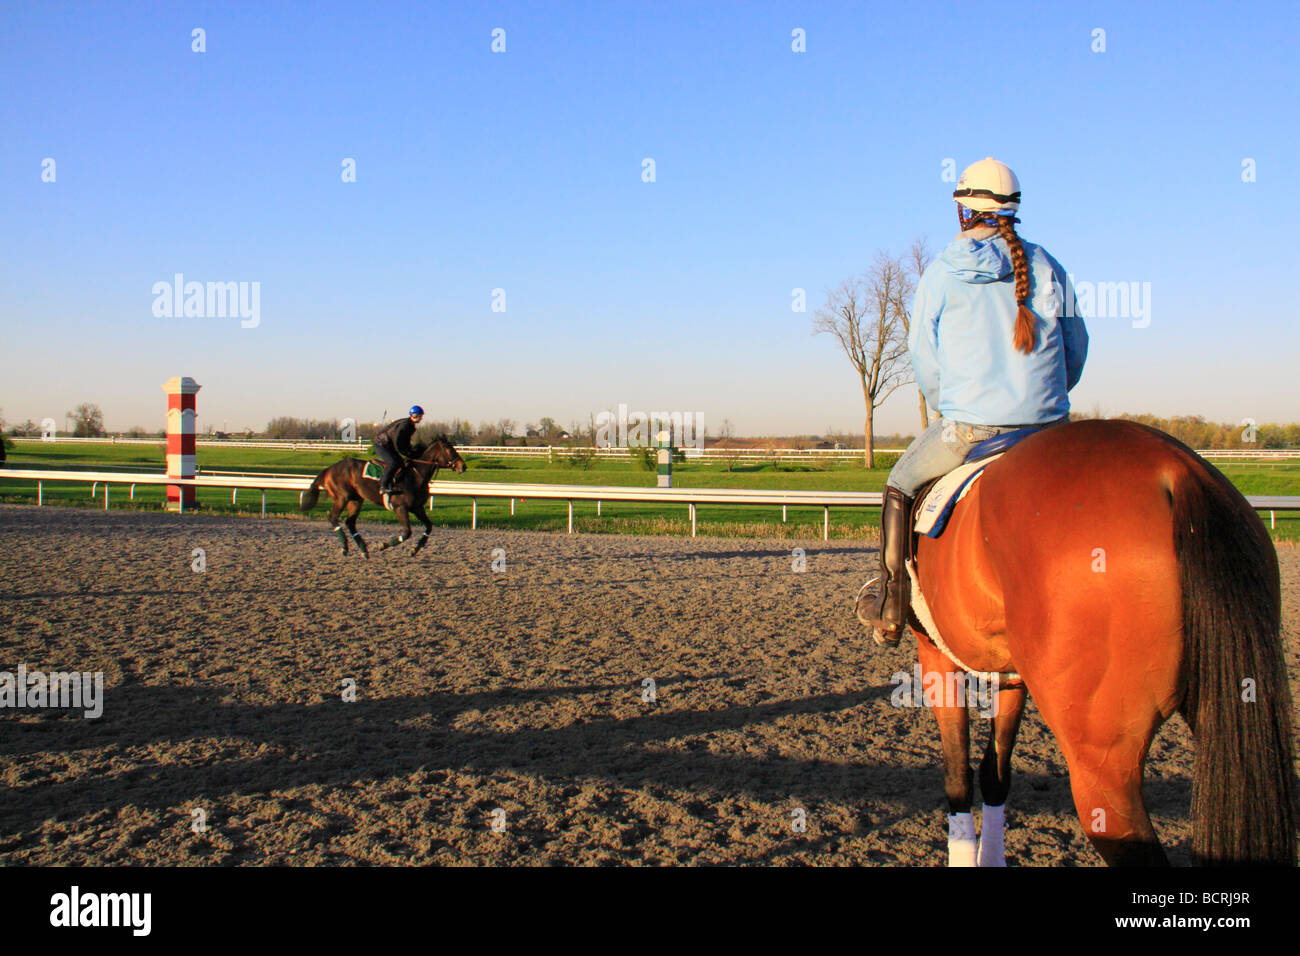 Exercise riders on thoroughbreds at early morning workout at Keeneland Race Course Lexington Kentucky - Stock Image